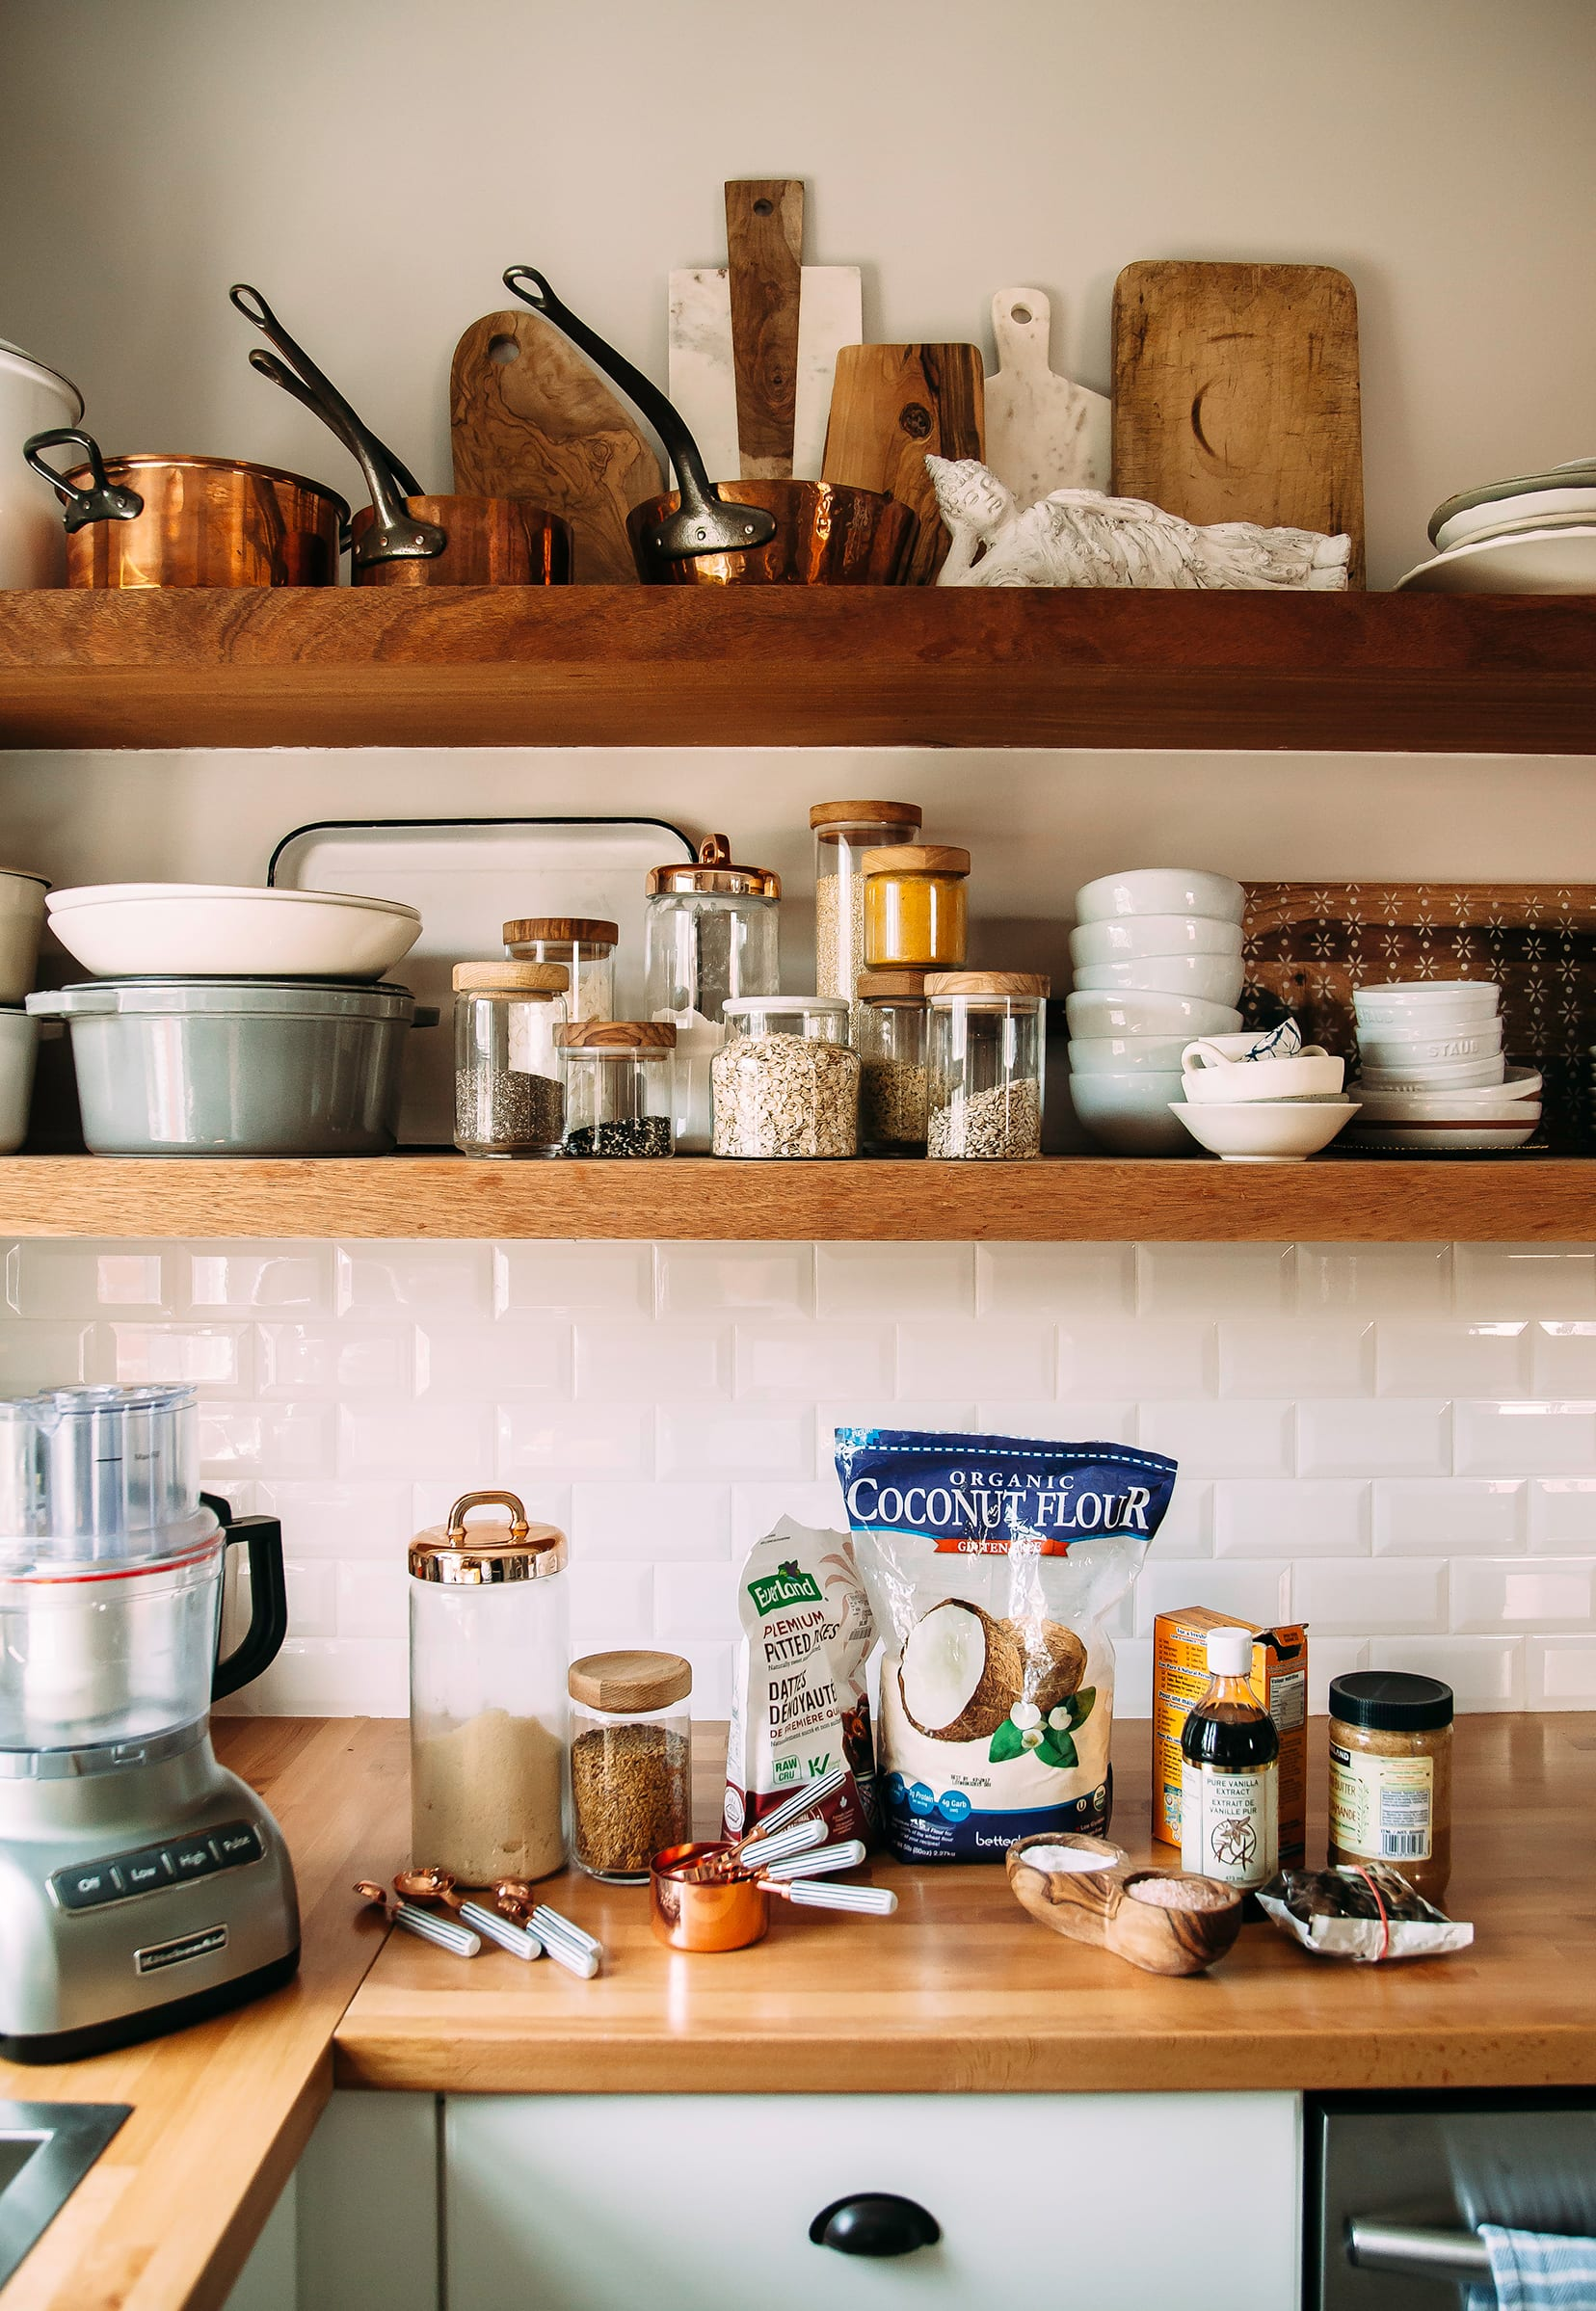 A photo of the open shelves in my kitchen with the cookie ingredients and a grey food processor on the butcher block counter.